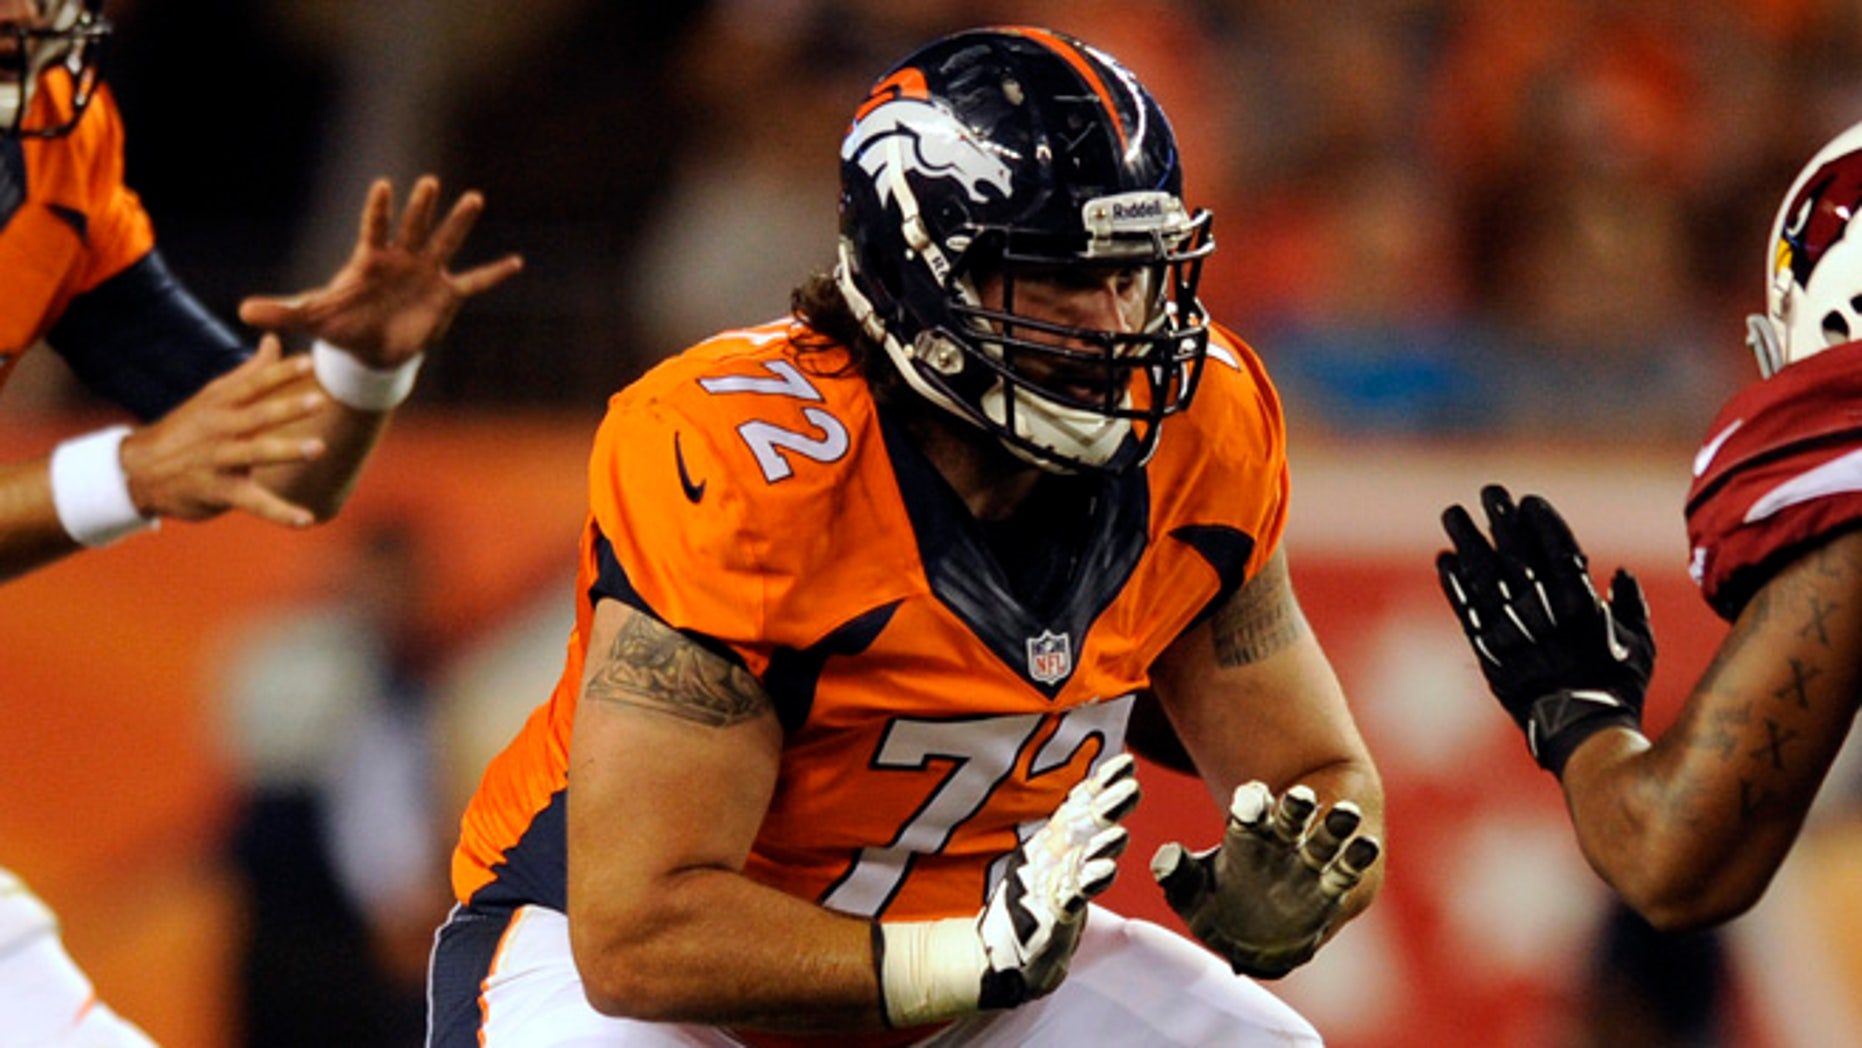 Aug. 29, 2013: Denver Broncos guard John Moffitt plays against the Arizona Cardinals during a pre-season NFL football game in Denver. Moffitt says he quit the NFL this week not because he was unhappy with a lack of playing time in Denver but because he'd lost his love for the game and was tired of risking his health.